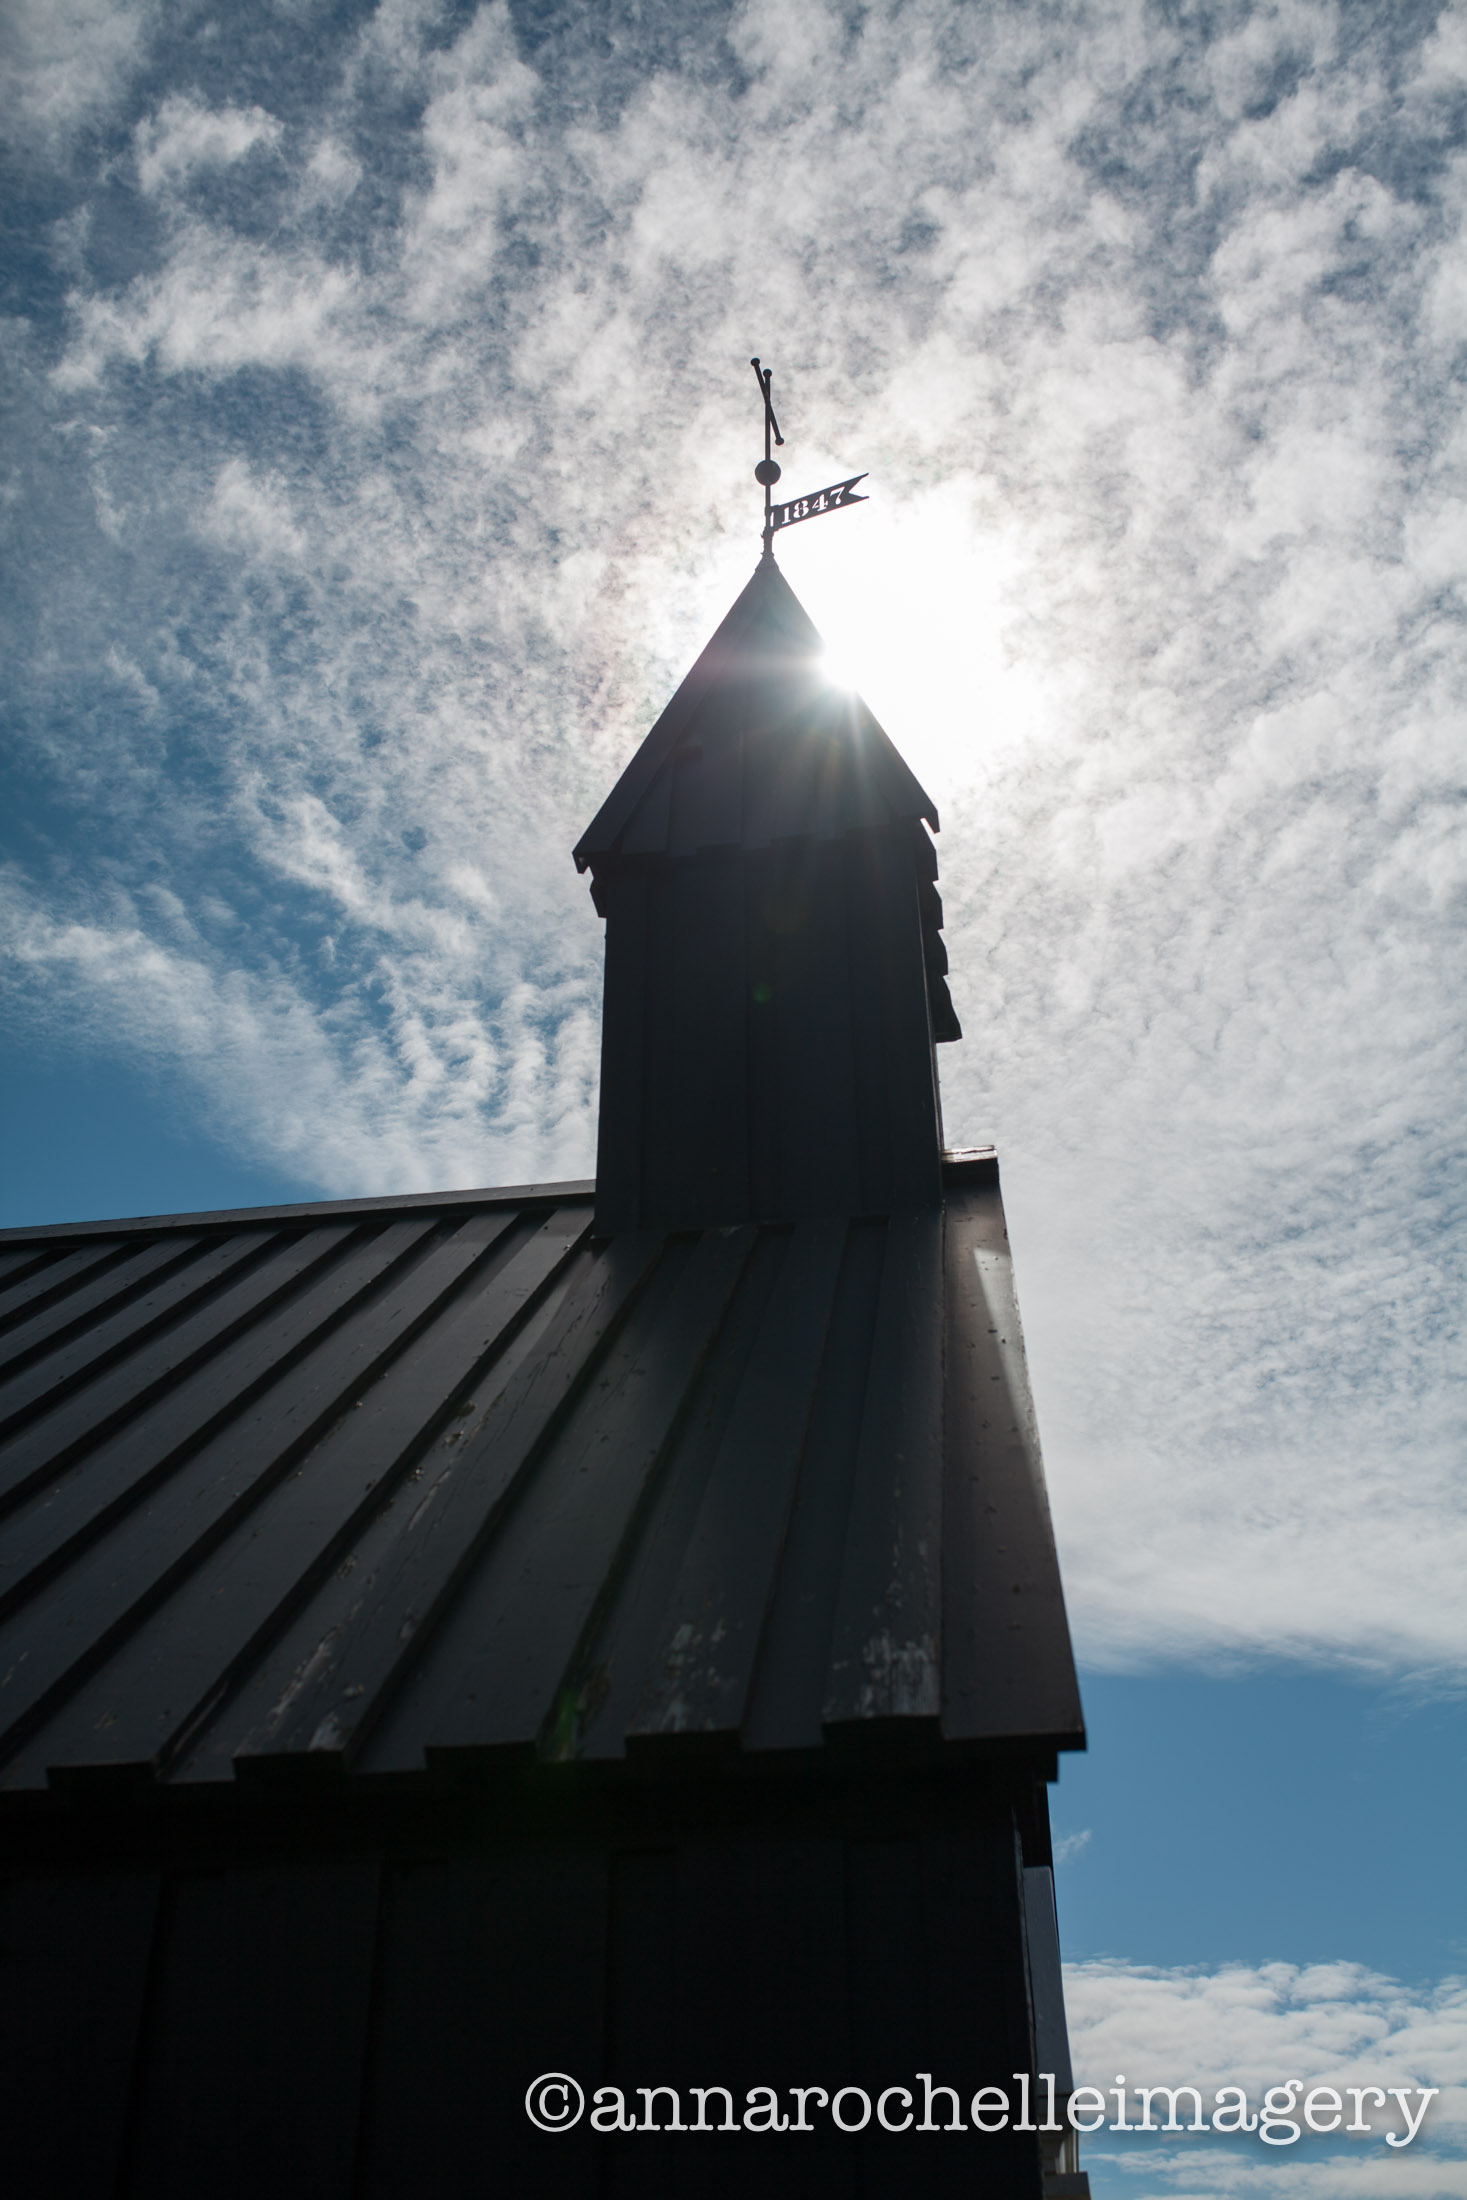 Bùdakirkja-black-church-iceland-southern.jpg